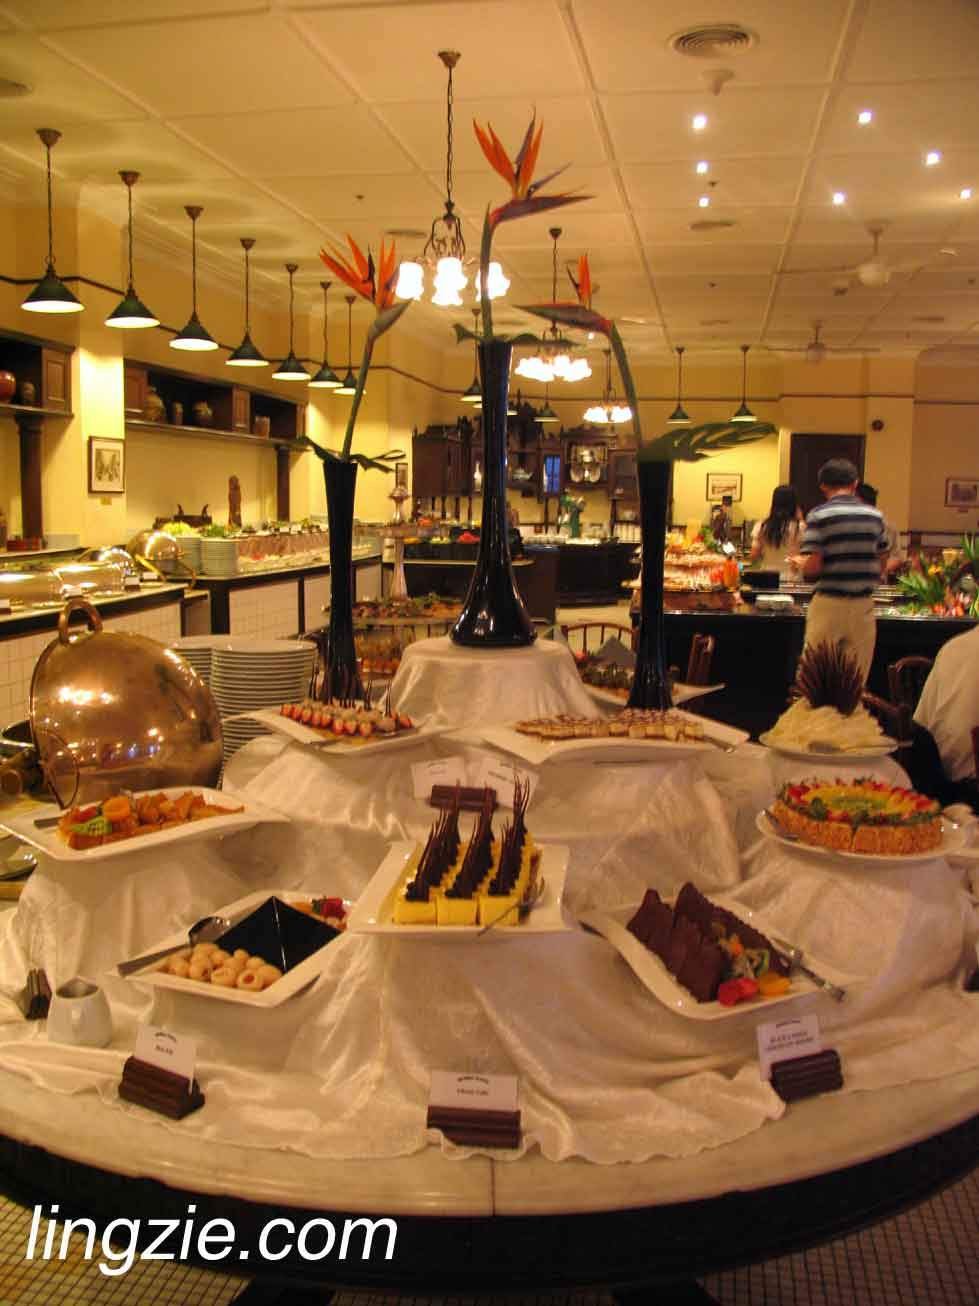 Main dessert table